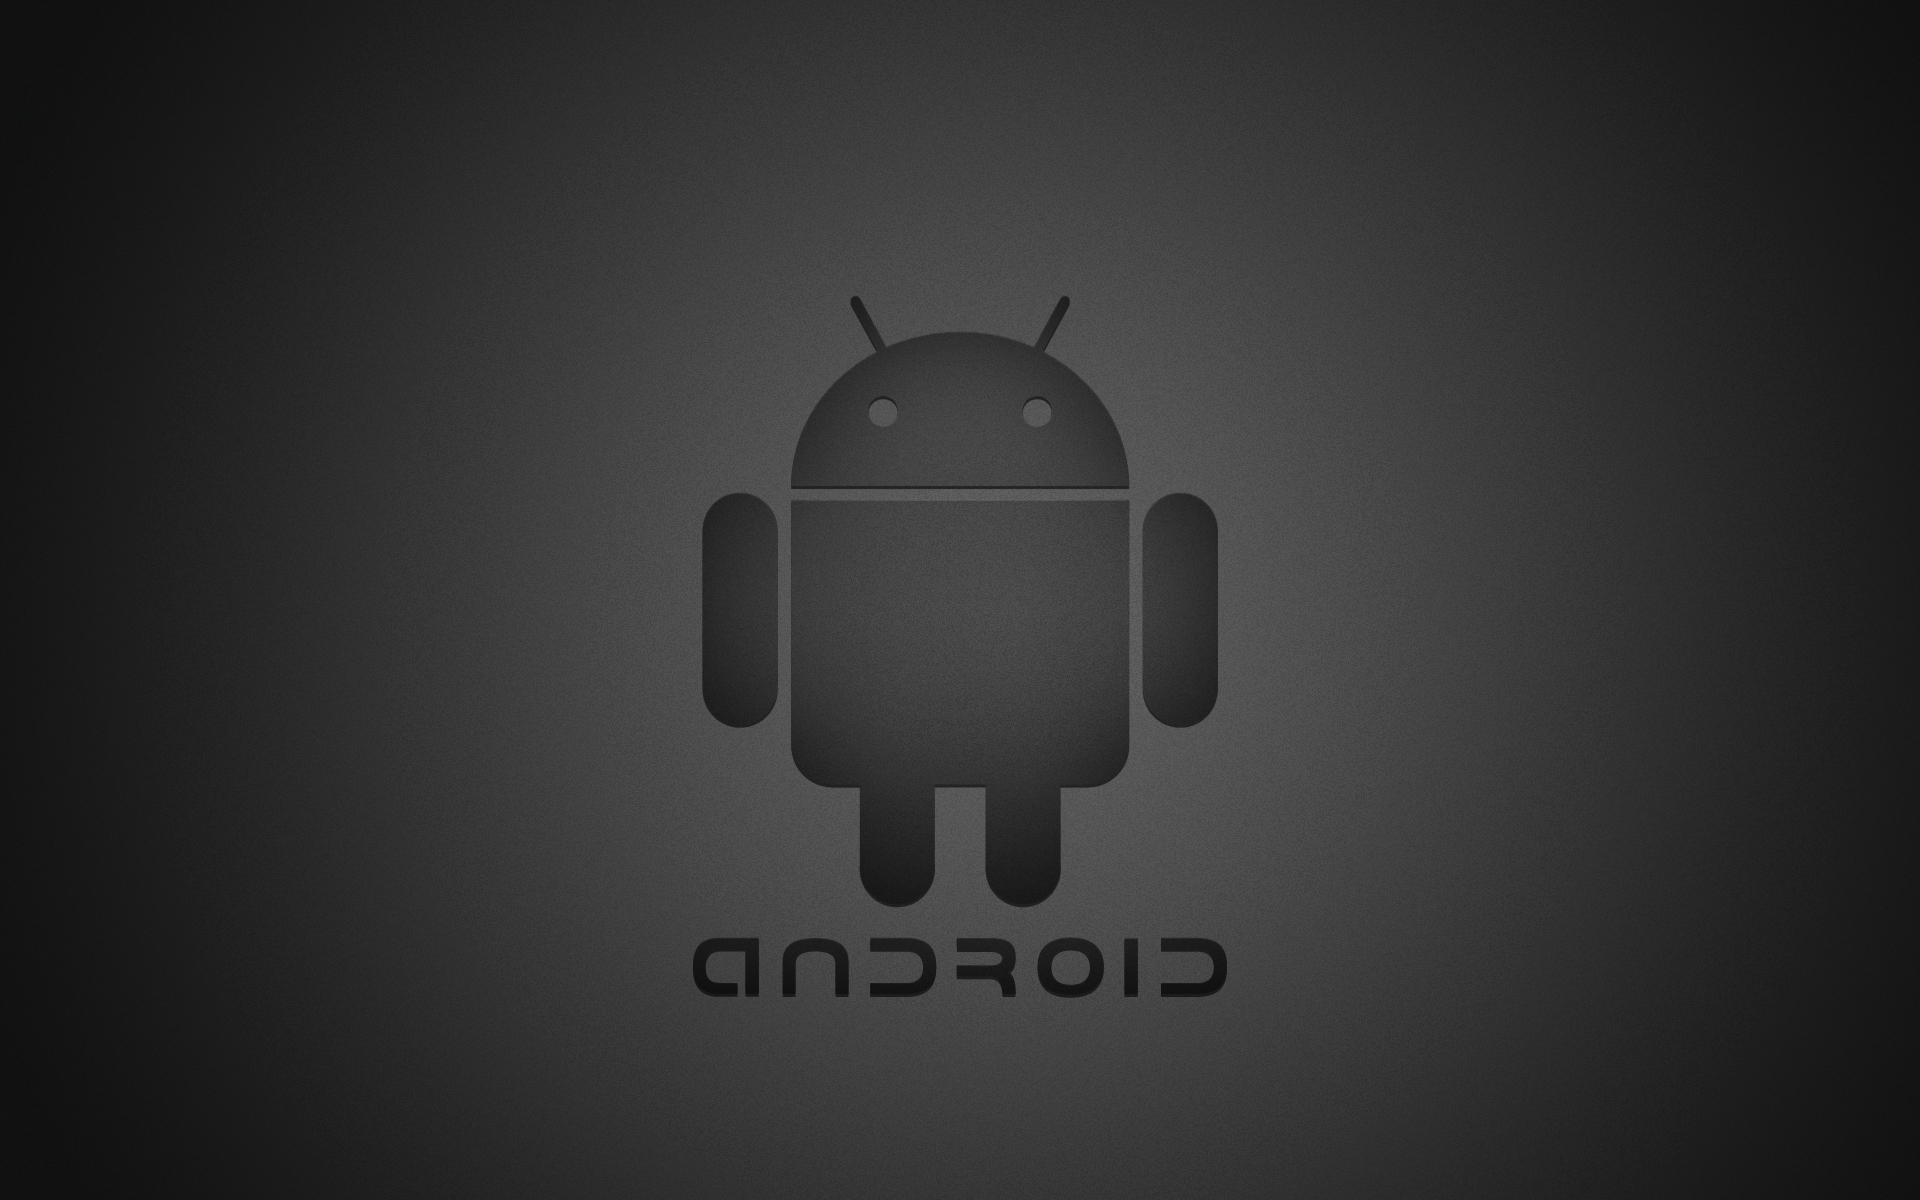 Android Logo Wallpapers HD   WallpaperAsk 1920x1200